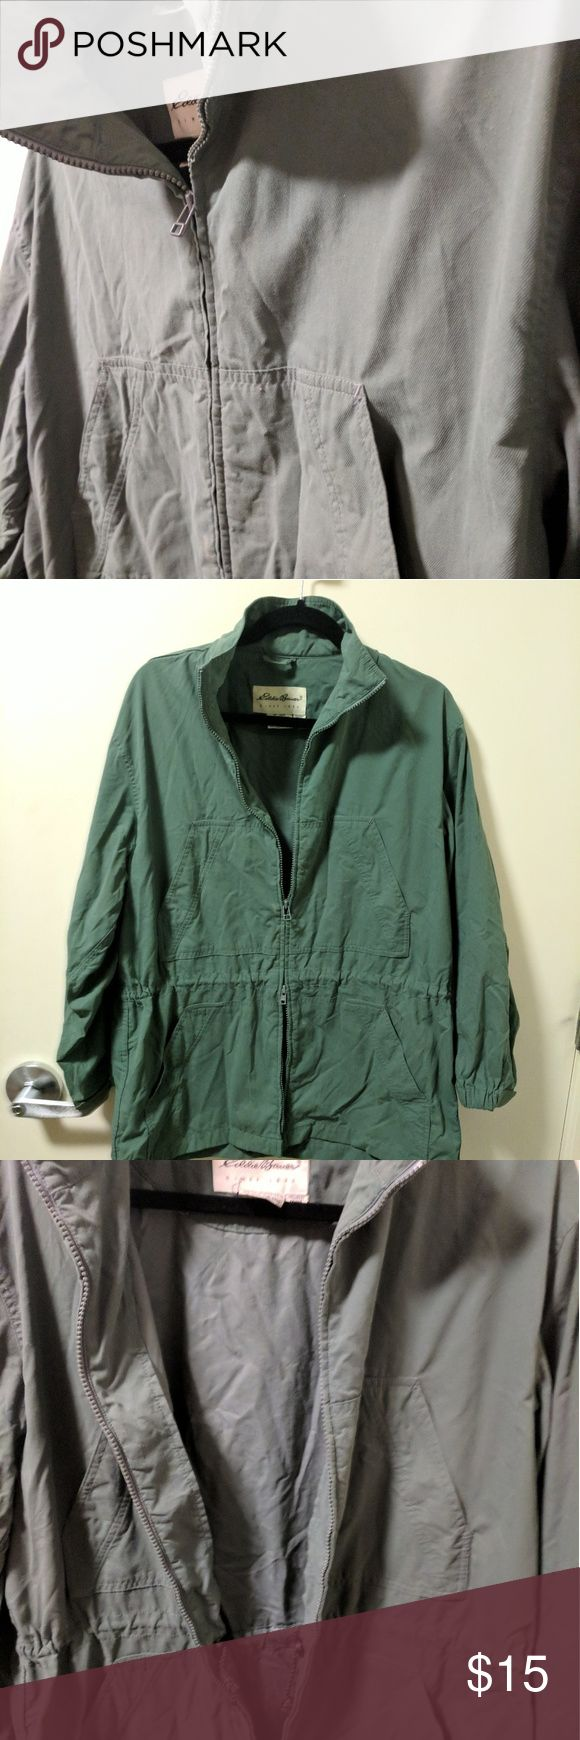 Lightweight Eddie Bauer Jacket This olive green jacket from Eddie Bauer is lightweight with two-way zipfront and 3/4-length sleeves. Adjustable cinched waist. Can unzip from bottom and top. Two sets of front pockets. Not lined. Eddie Bauer Jackets & Coats Utility Jackets